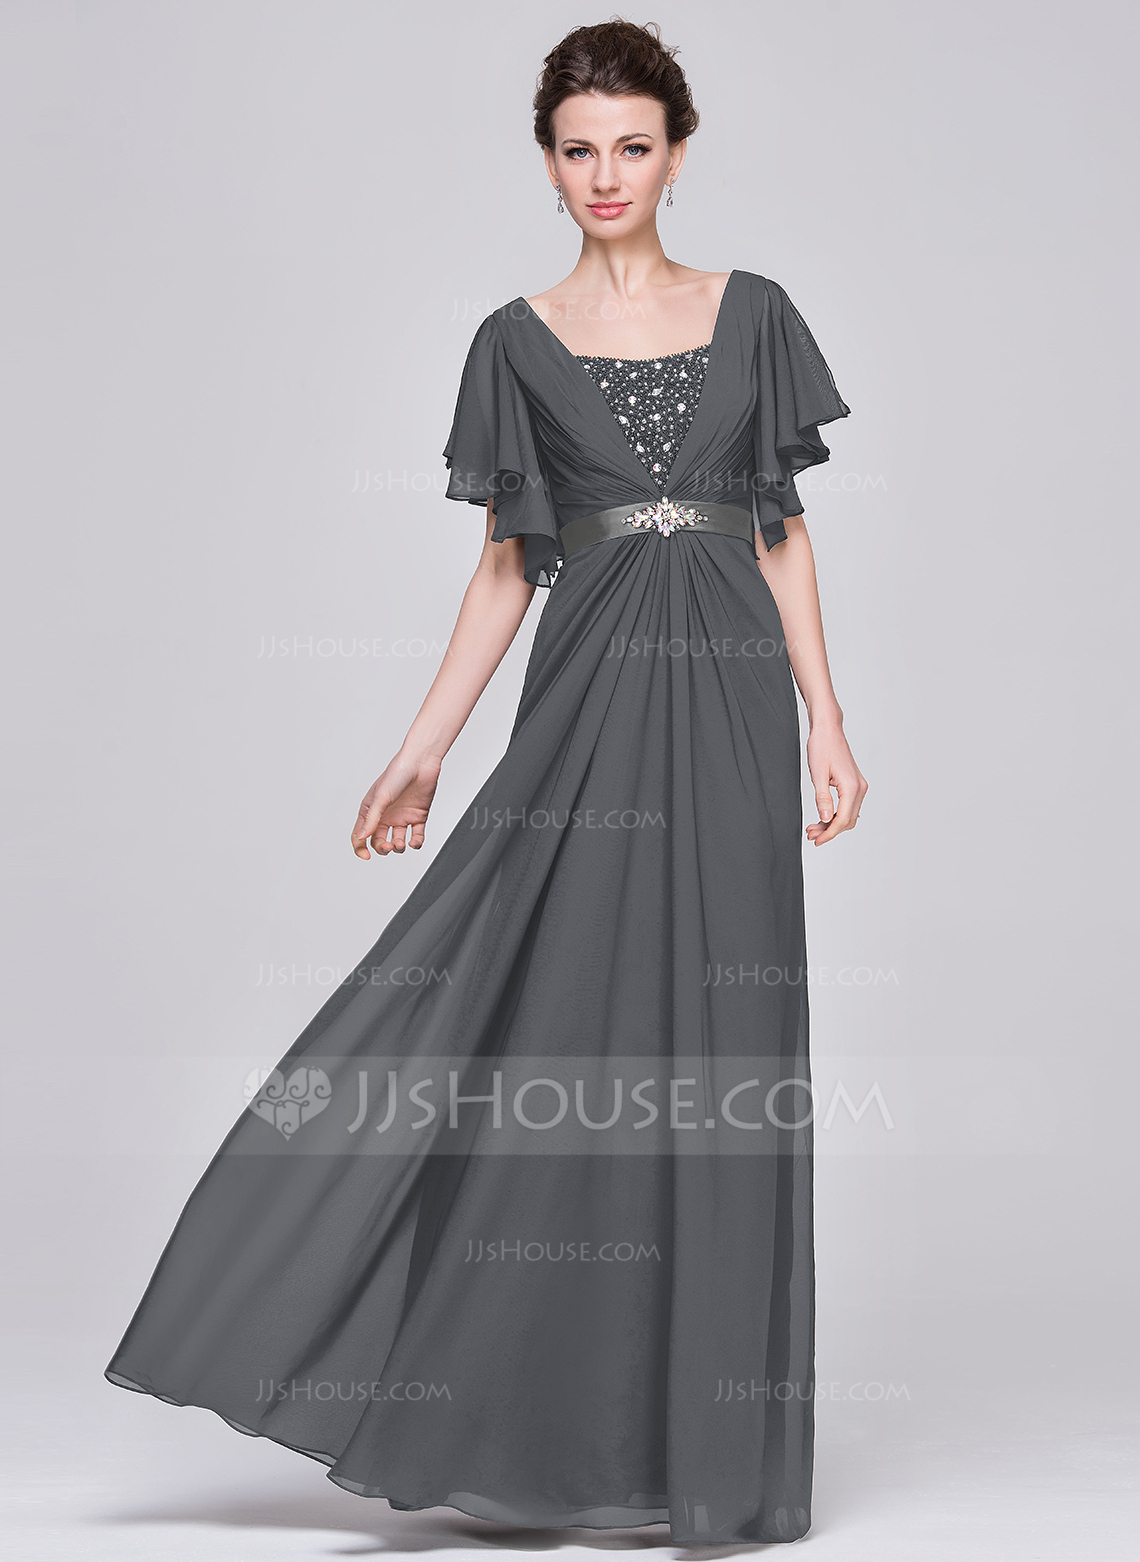 A-Line Sweetheart Floor-Length Chiffon Mother of the Bride Dress With Ruffle Beading Sequins